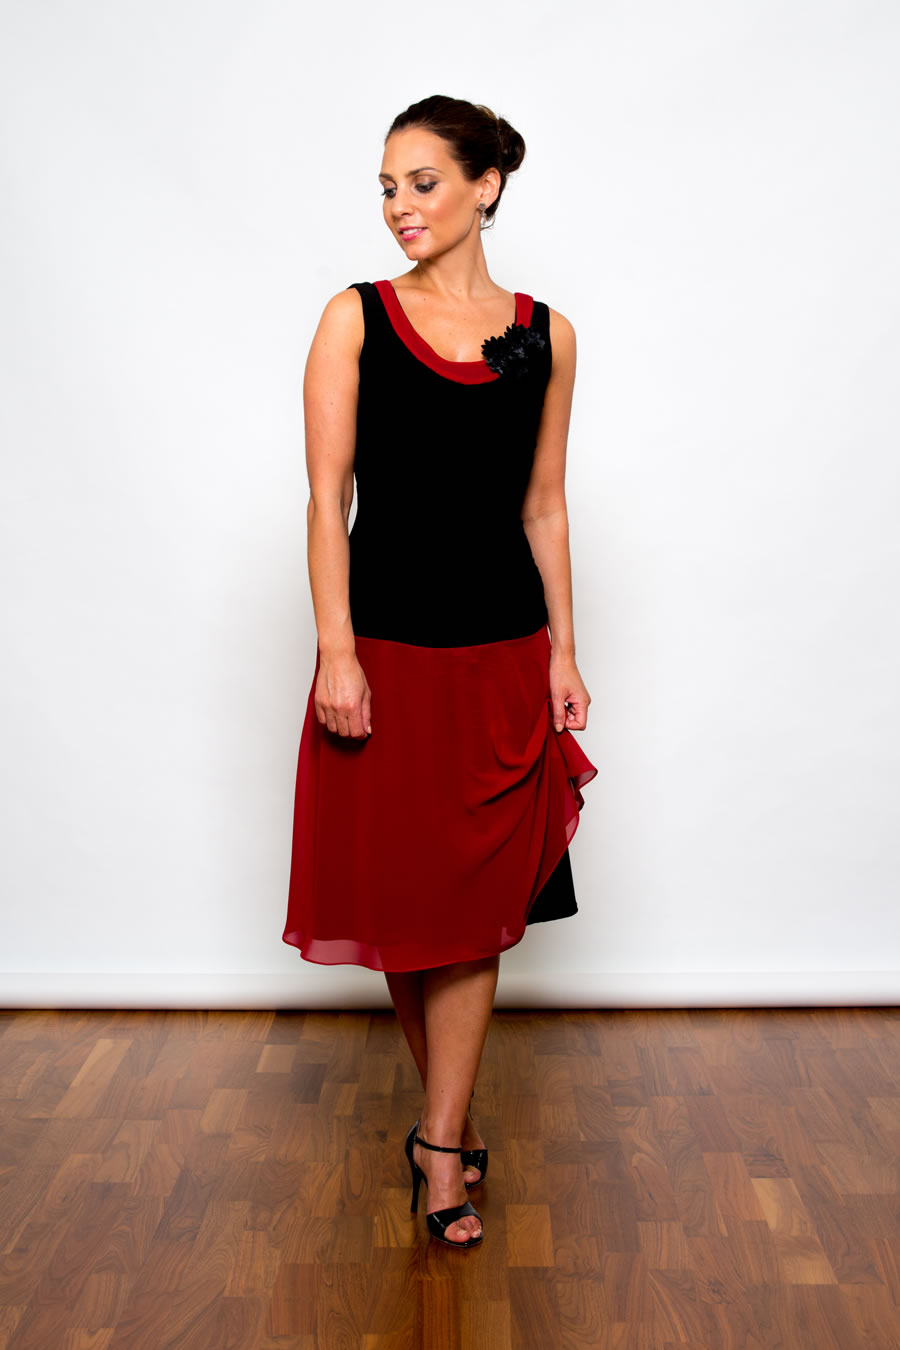 Tango Clothing Dresses Amp Fashion Made In The Uk Boheme